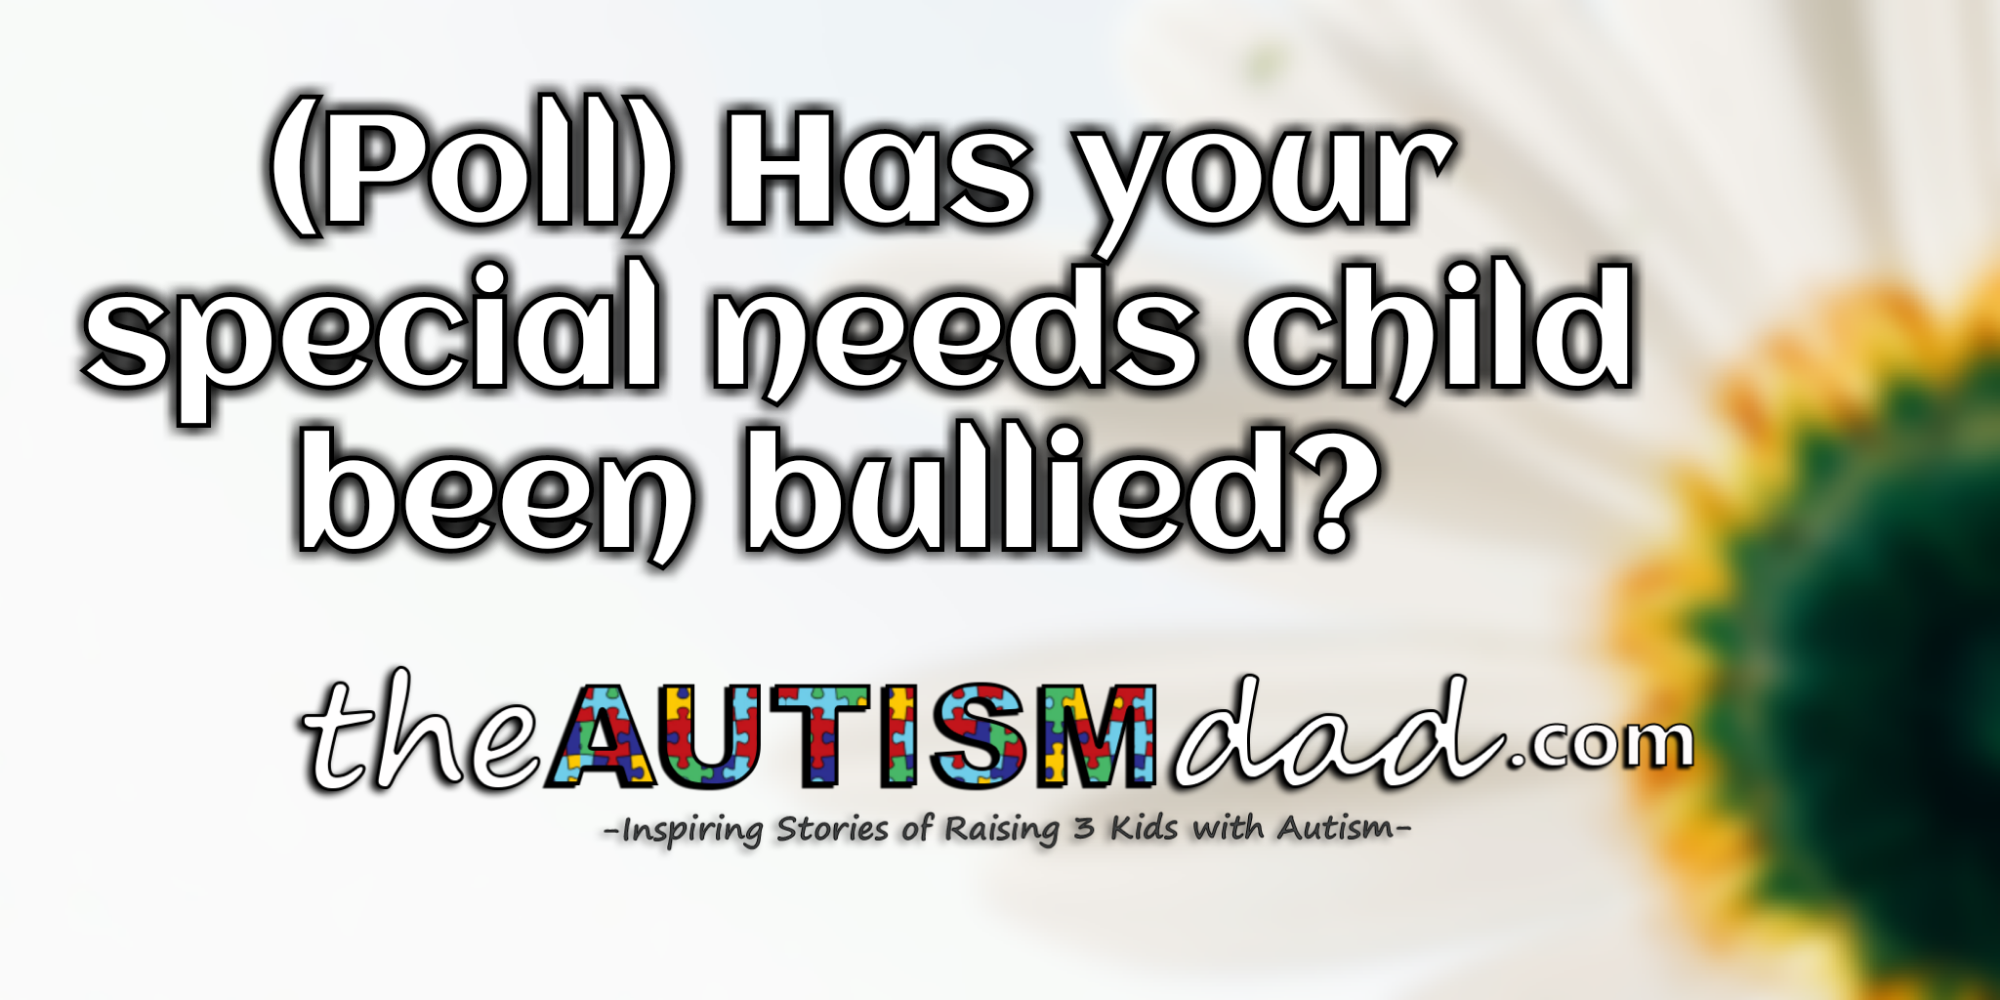 (Poll) Has your special needs child been bullied?